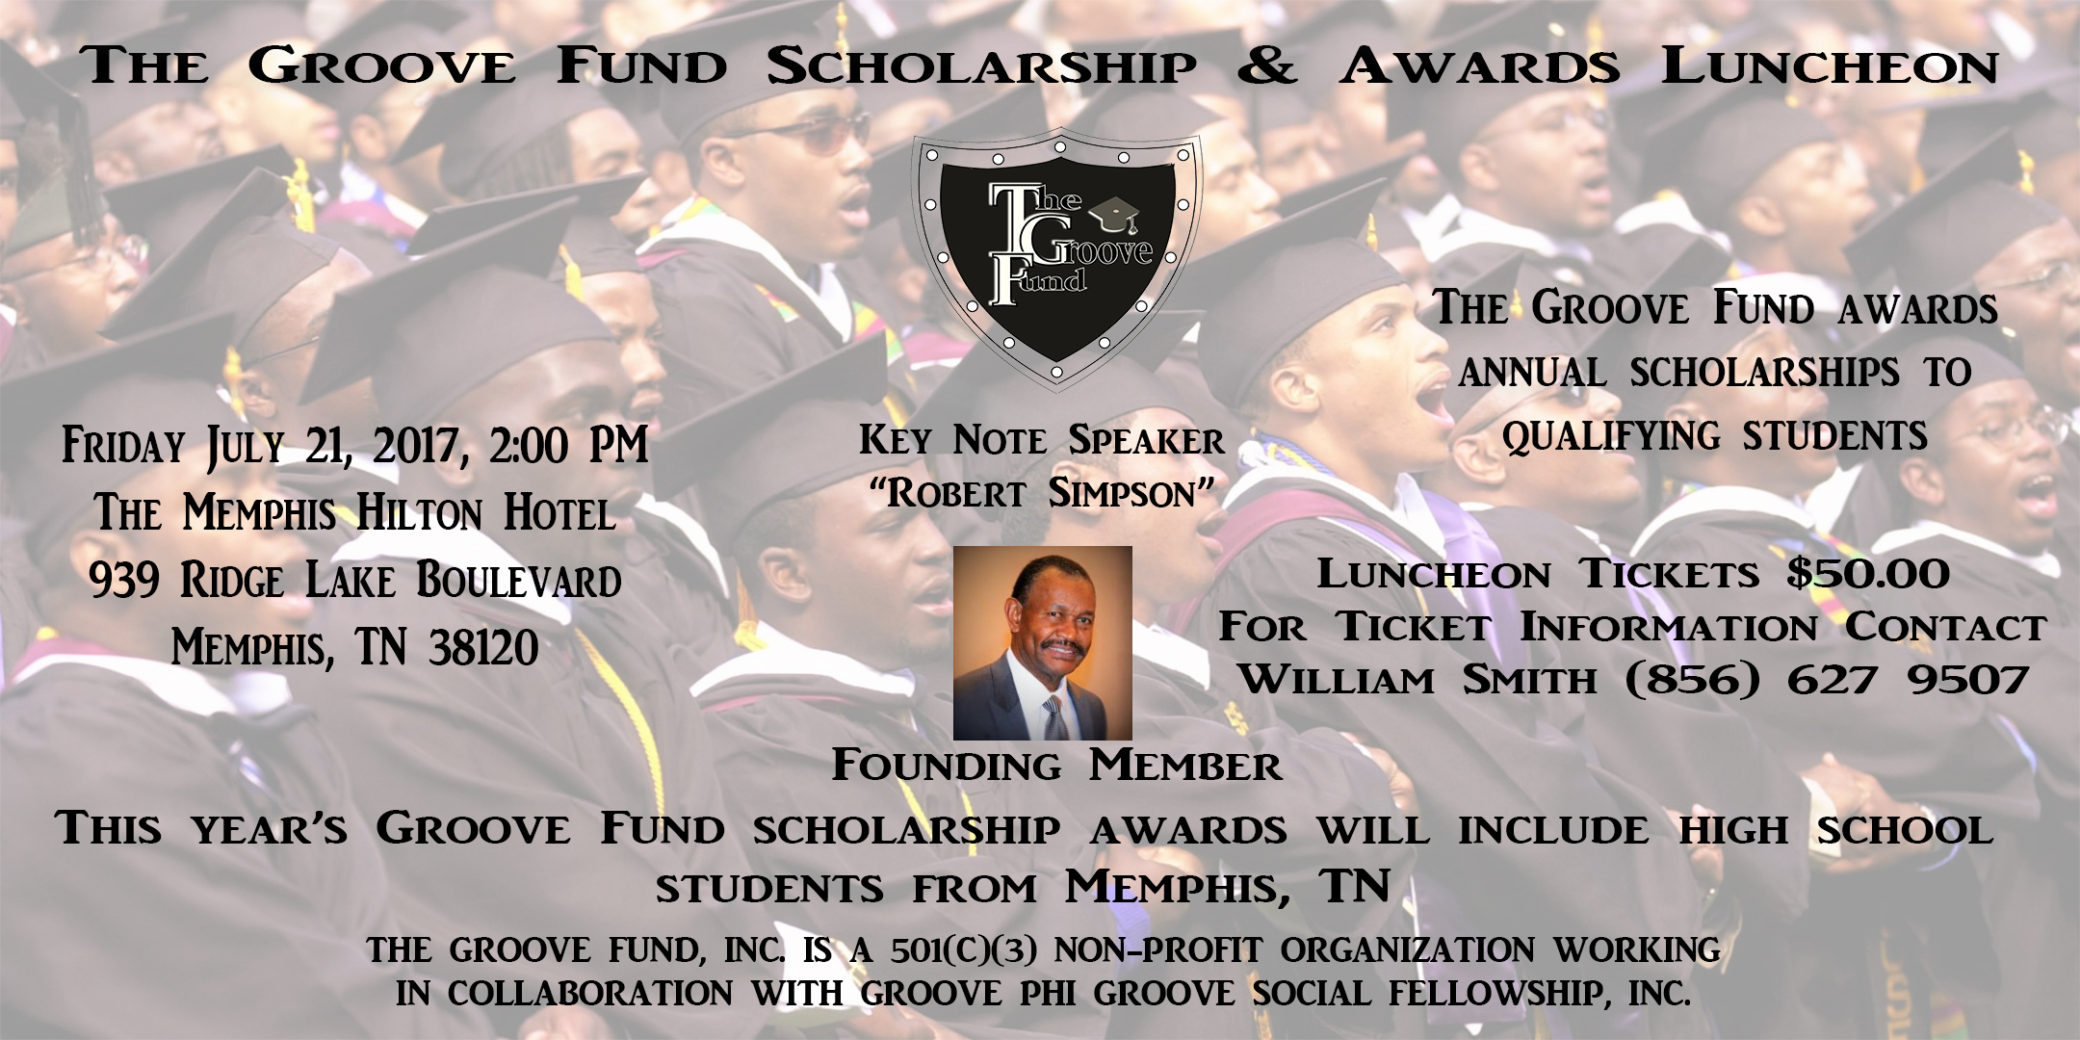 The Groove Fund Scholarship & Awards Luncheon